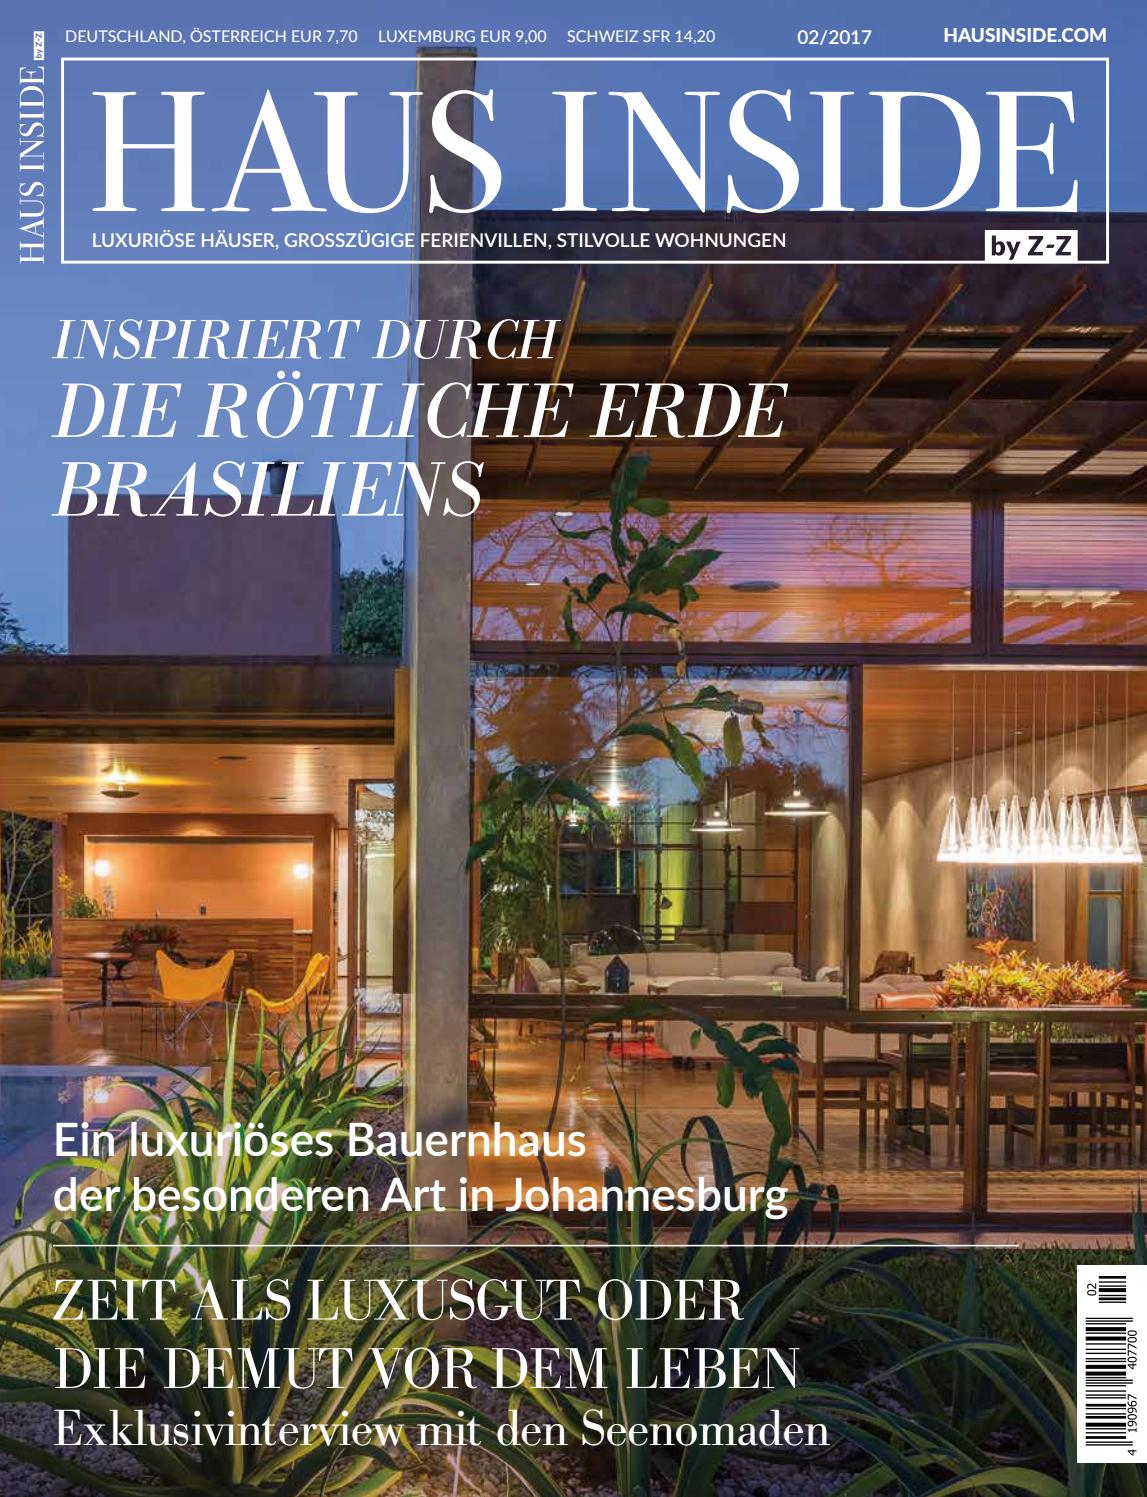 HAUS INSIDE by Z-Z 2/2017 by HAUS INSIDE - issuu